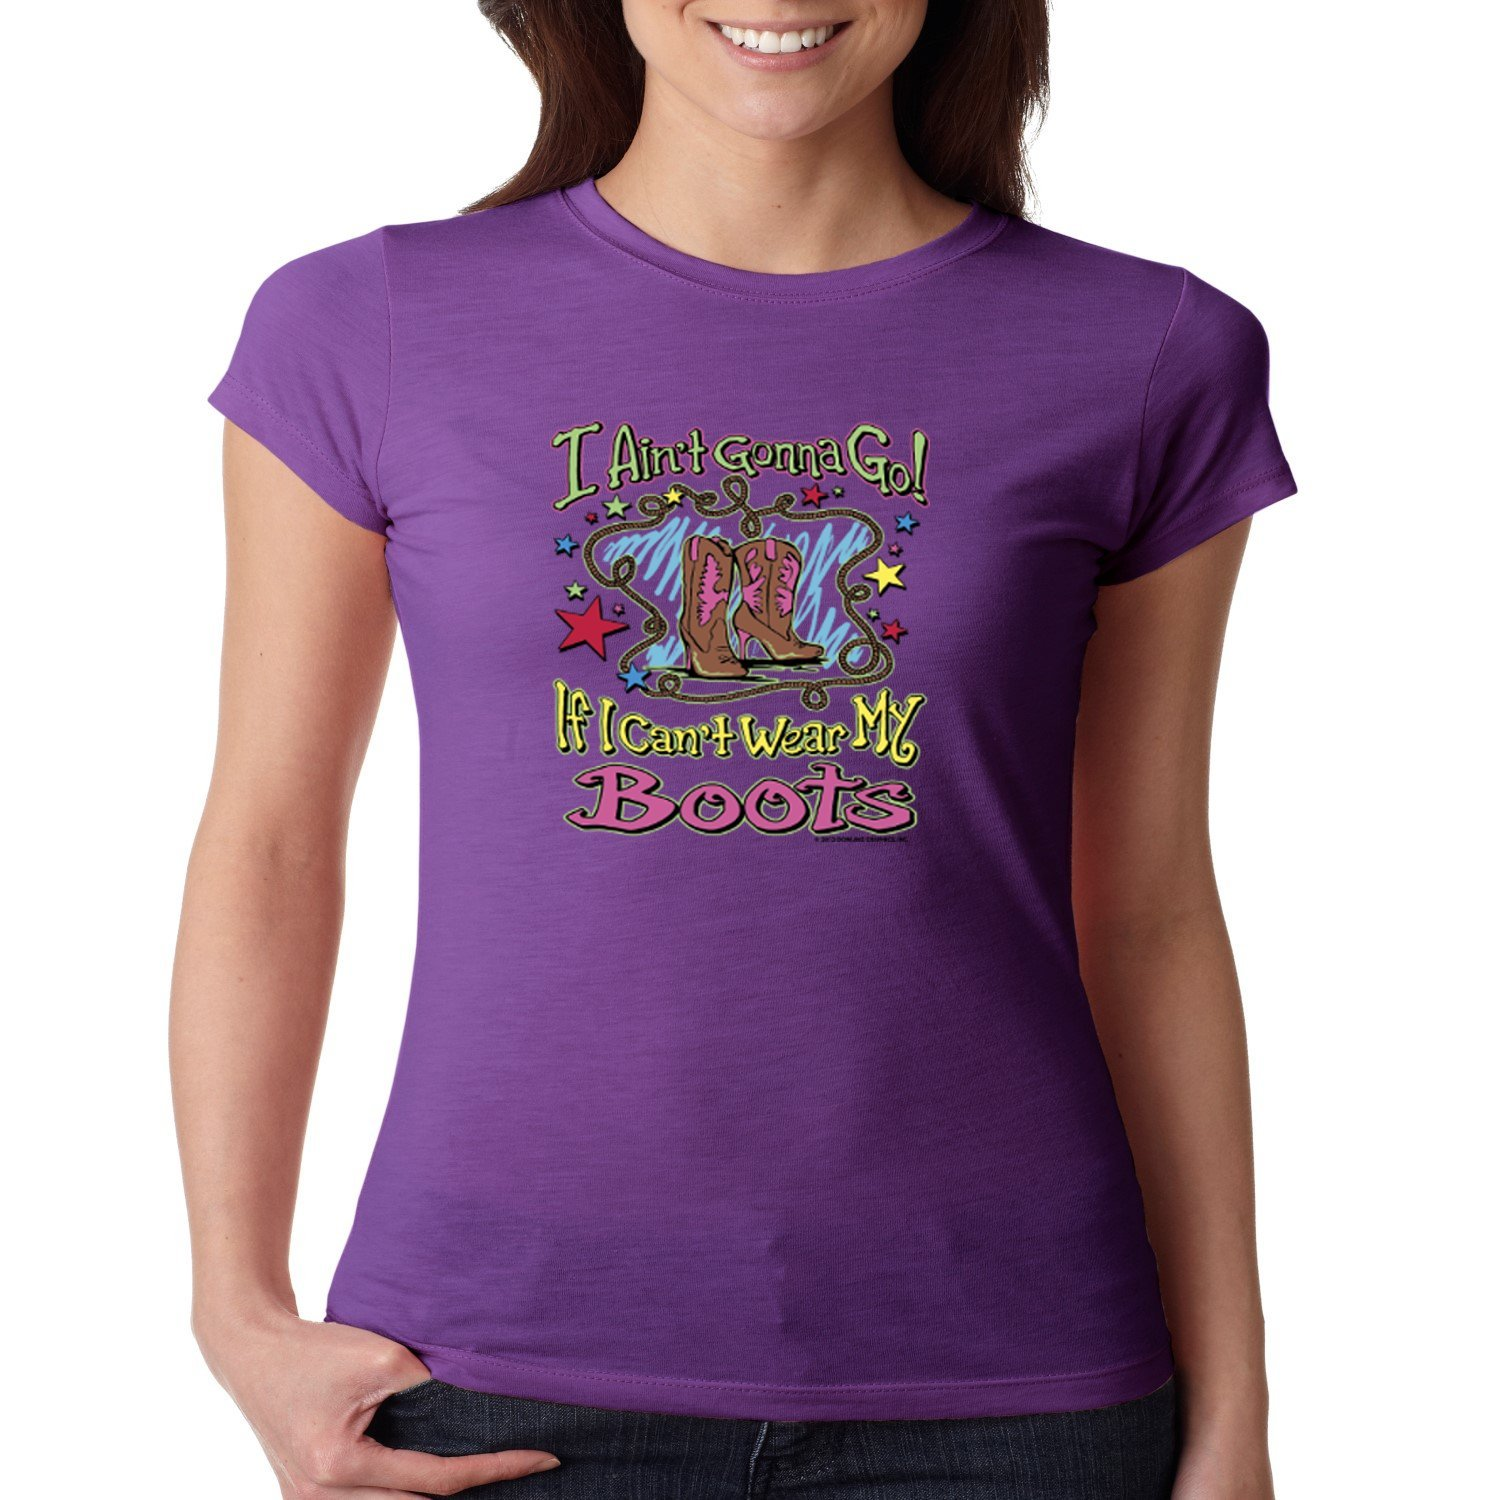 Sassy Chicks Juniors Fitted Shirt Wear My Boots (Purple, 2XL)